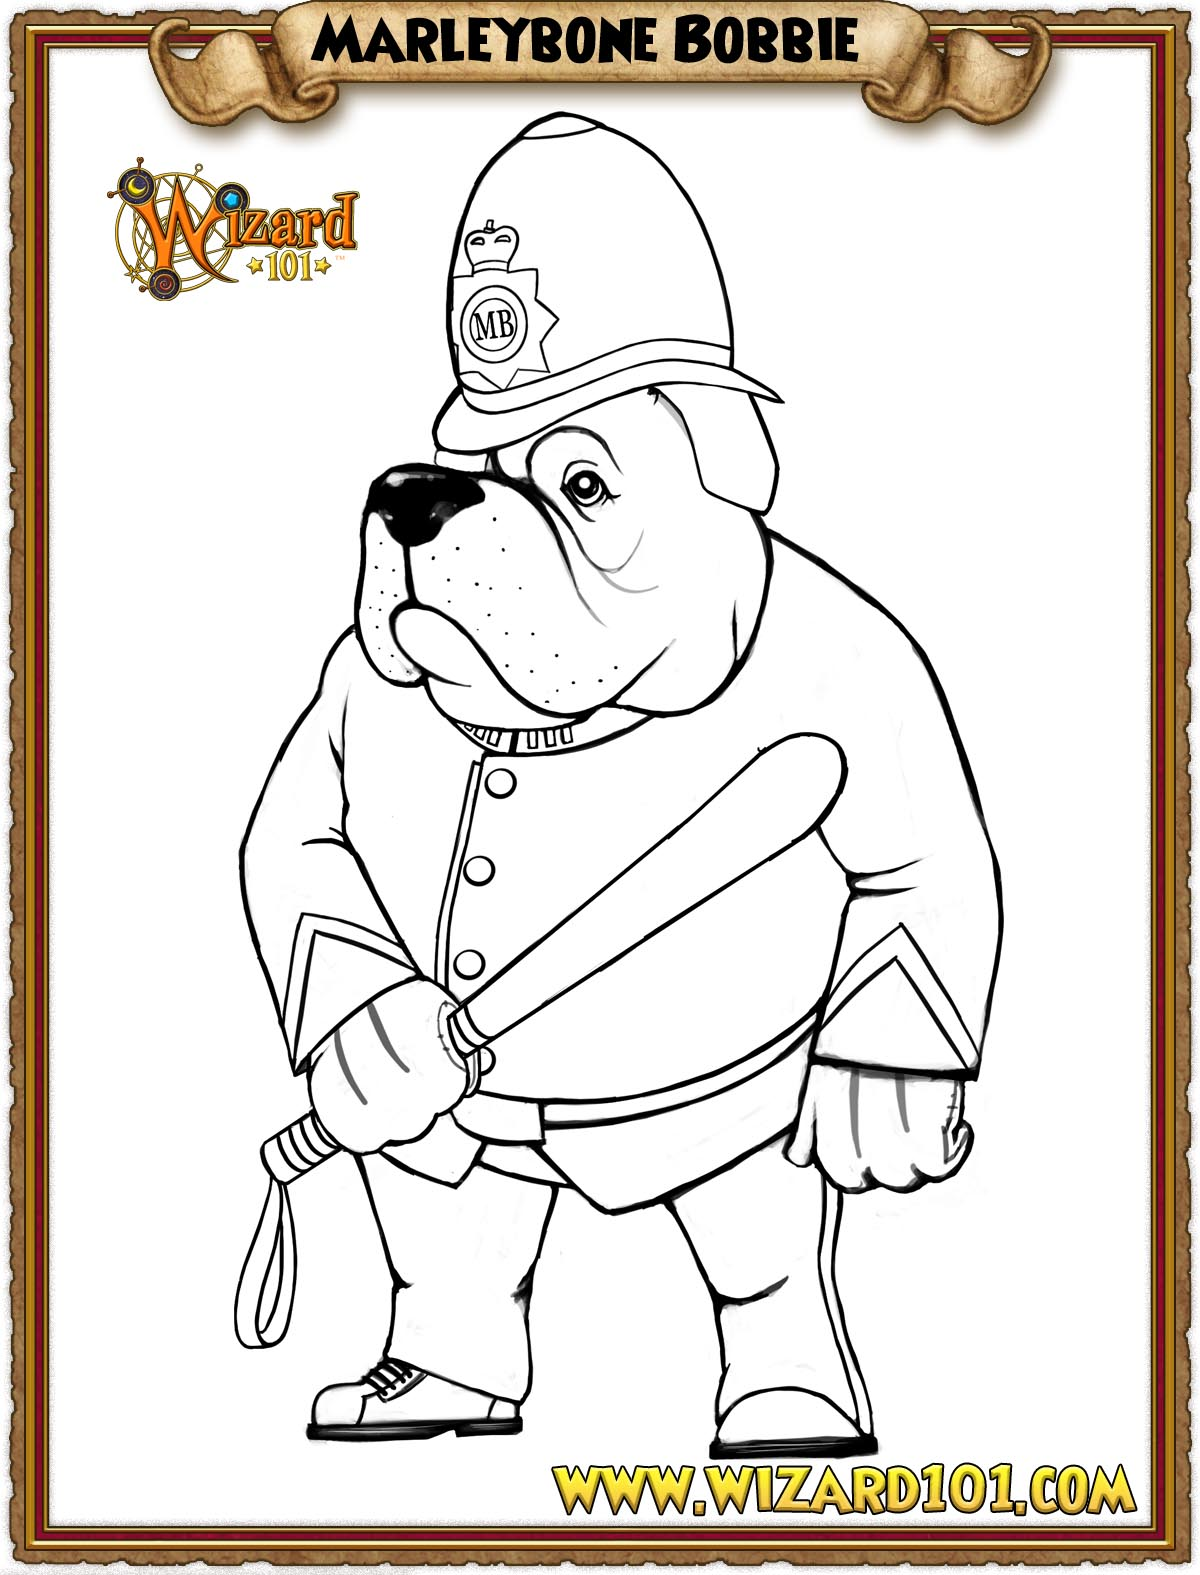 coloring pages wizard101 free online game rh wizard101 com Wizard101 Fire Cat Coloring Pages Adult Coloring Pages